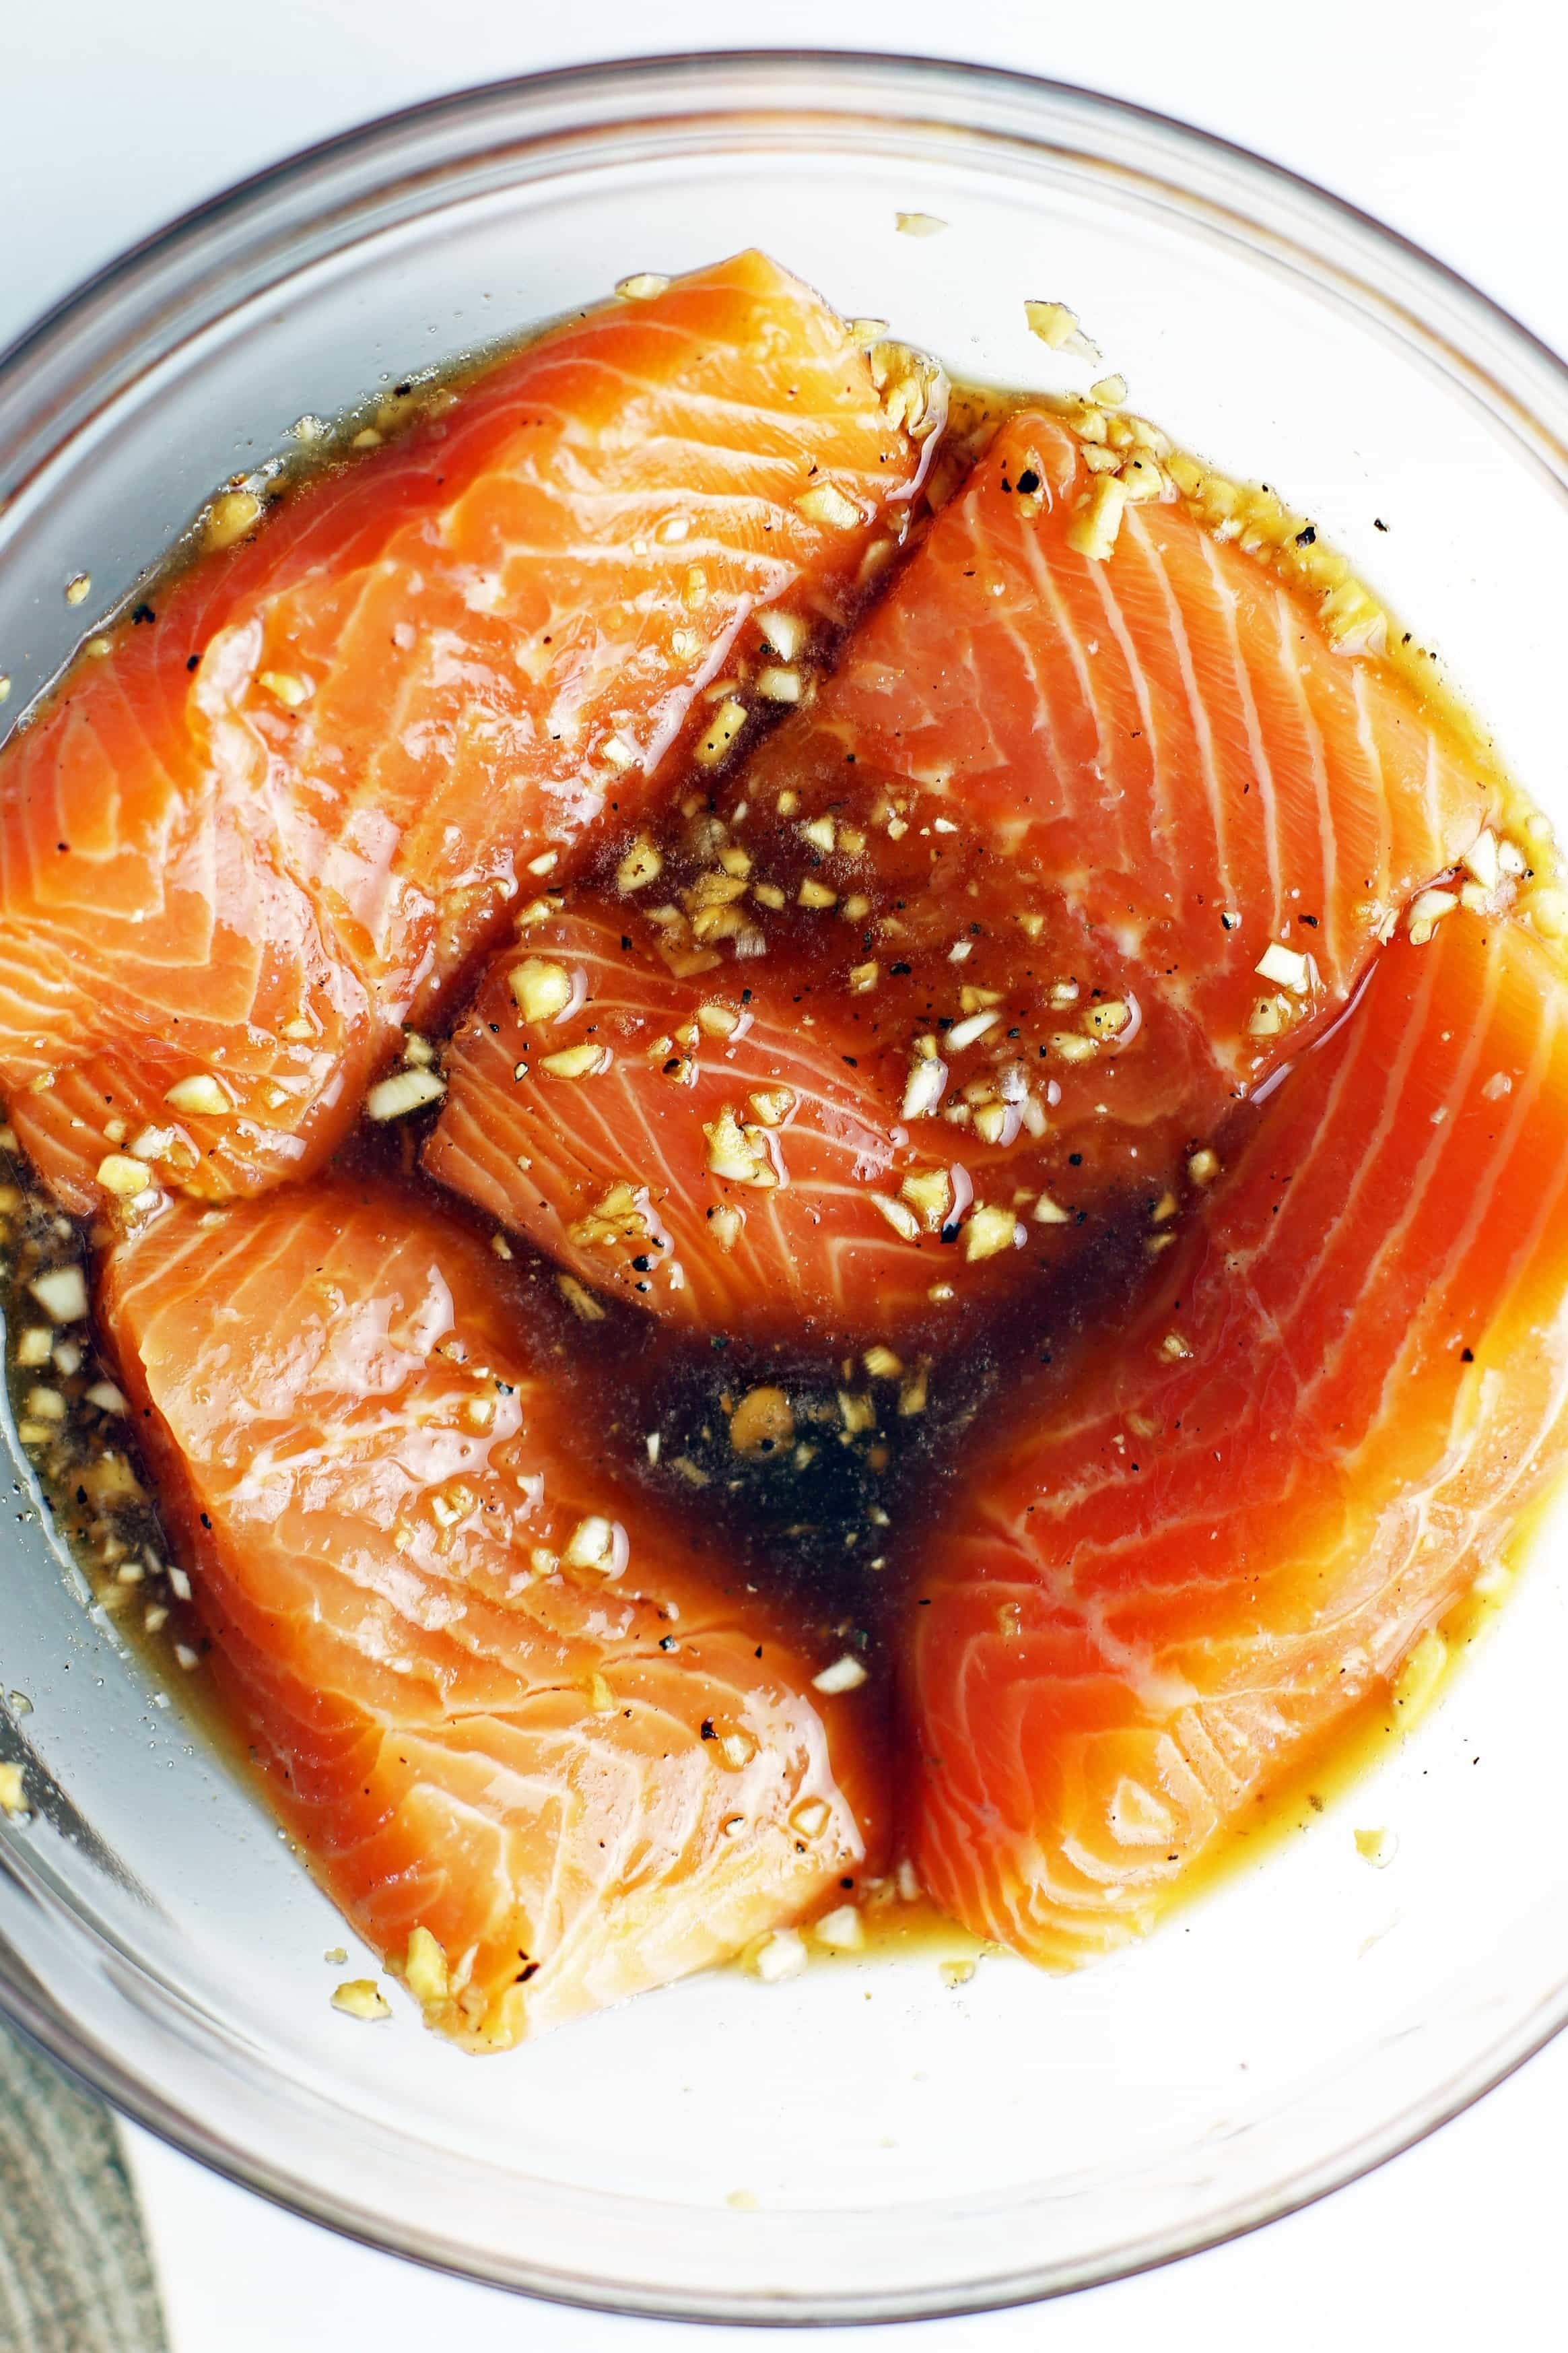 Four skinless salmon fillets covered in honey garlic marinade in a large glass bowl.